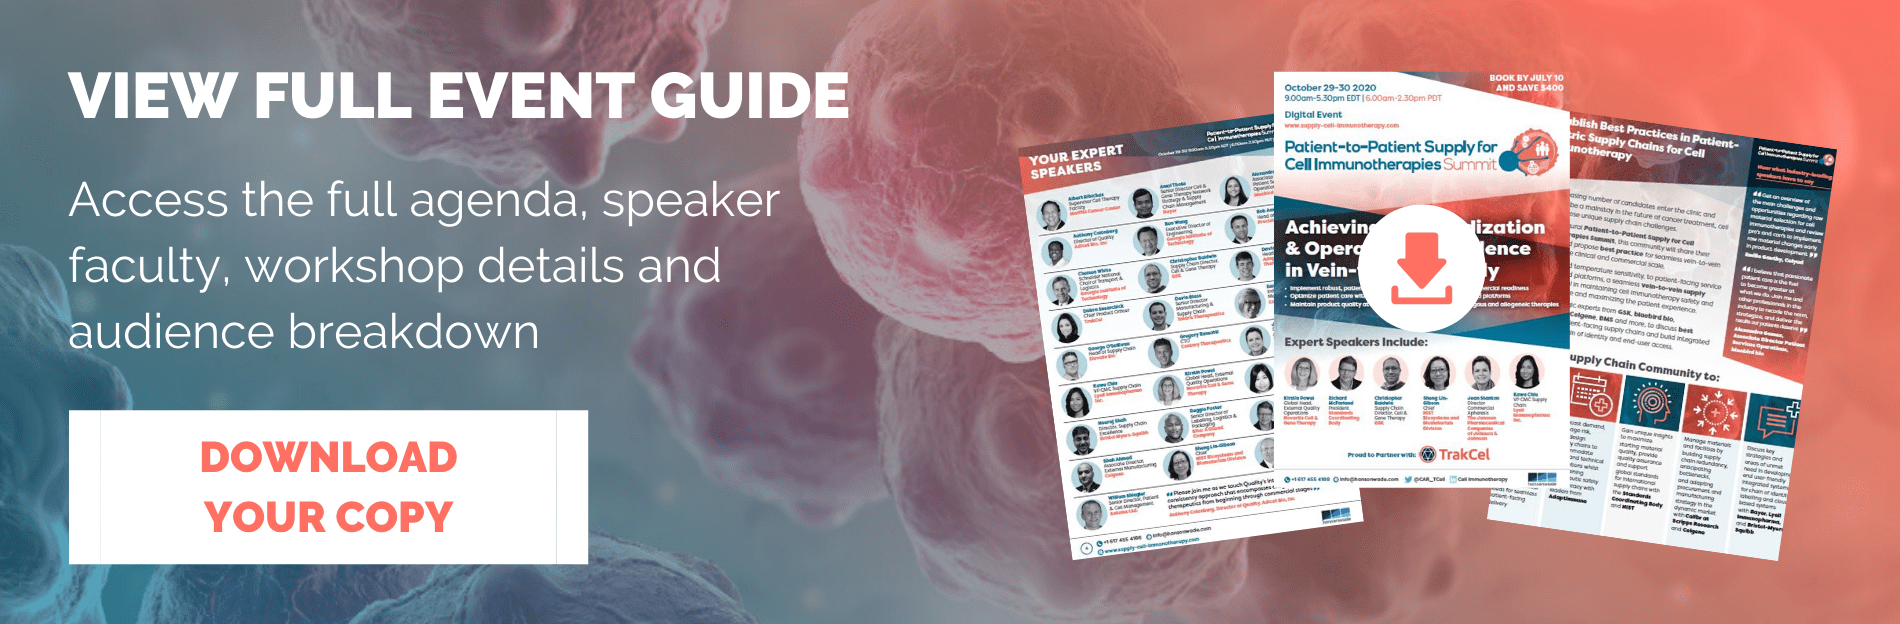 Patient-to-Patient Supply for Cell Immunotherapies Summit - Event Guide